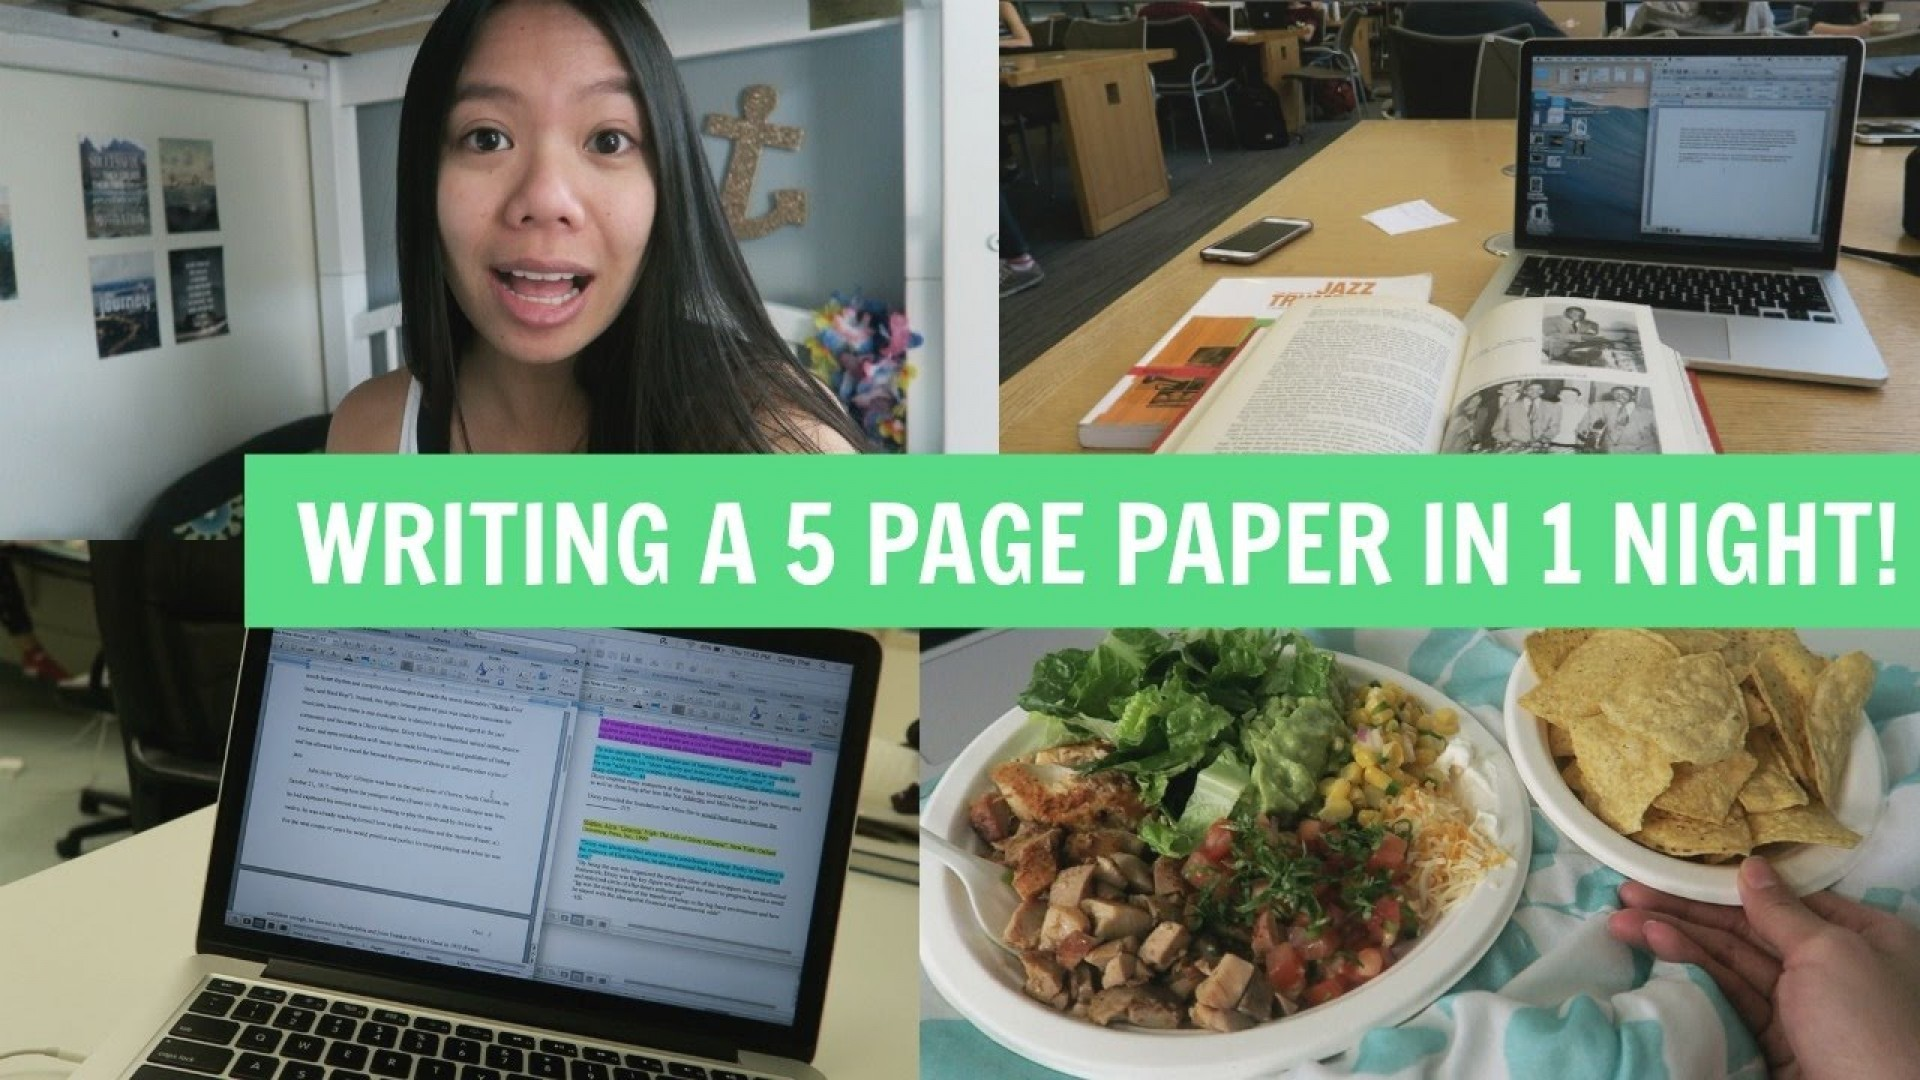 020 How To Write Page Research Paper In One Night Phenomenal A 10 1920